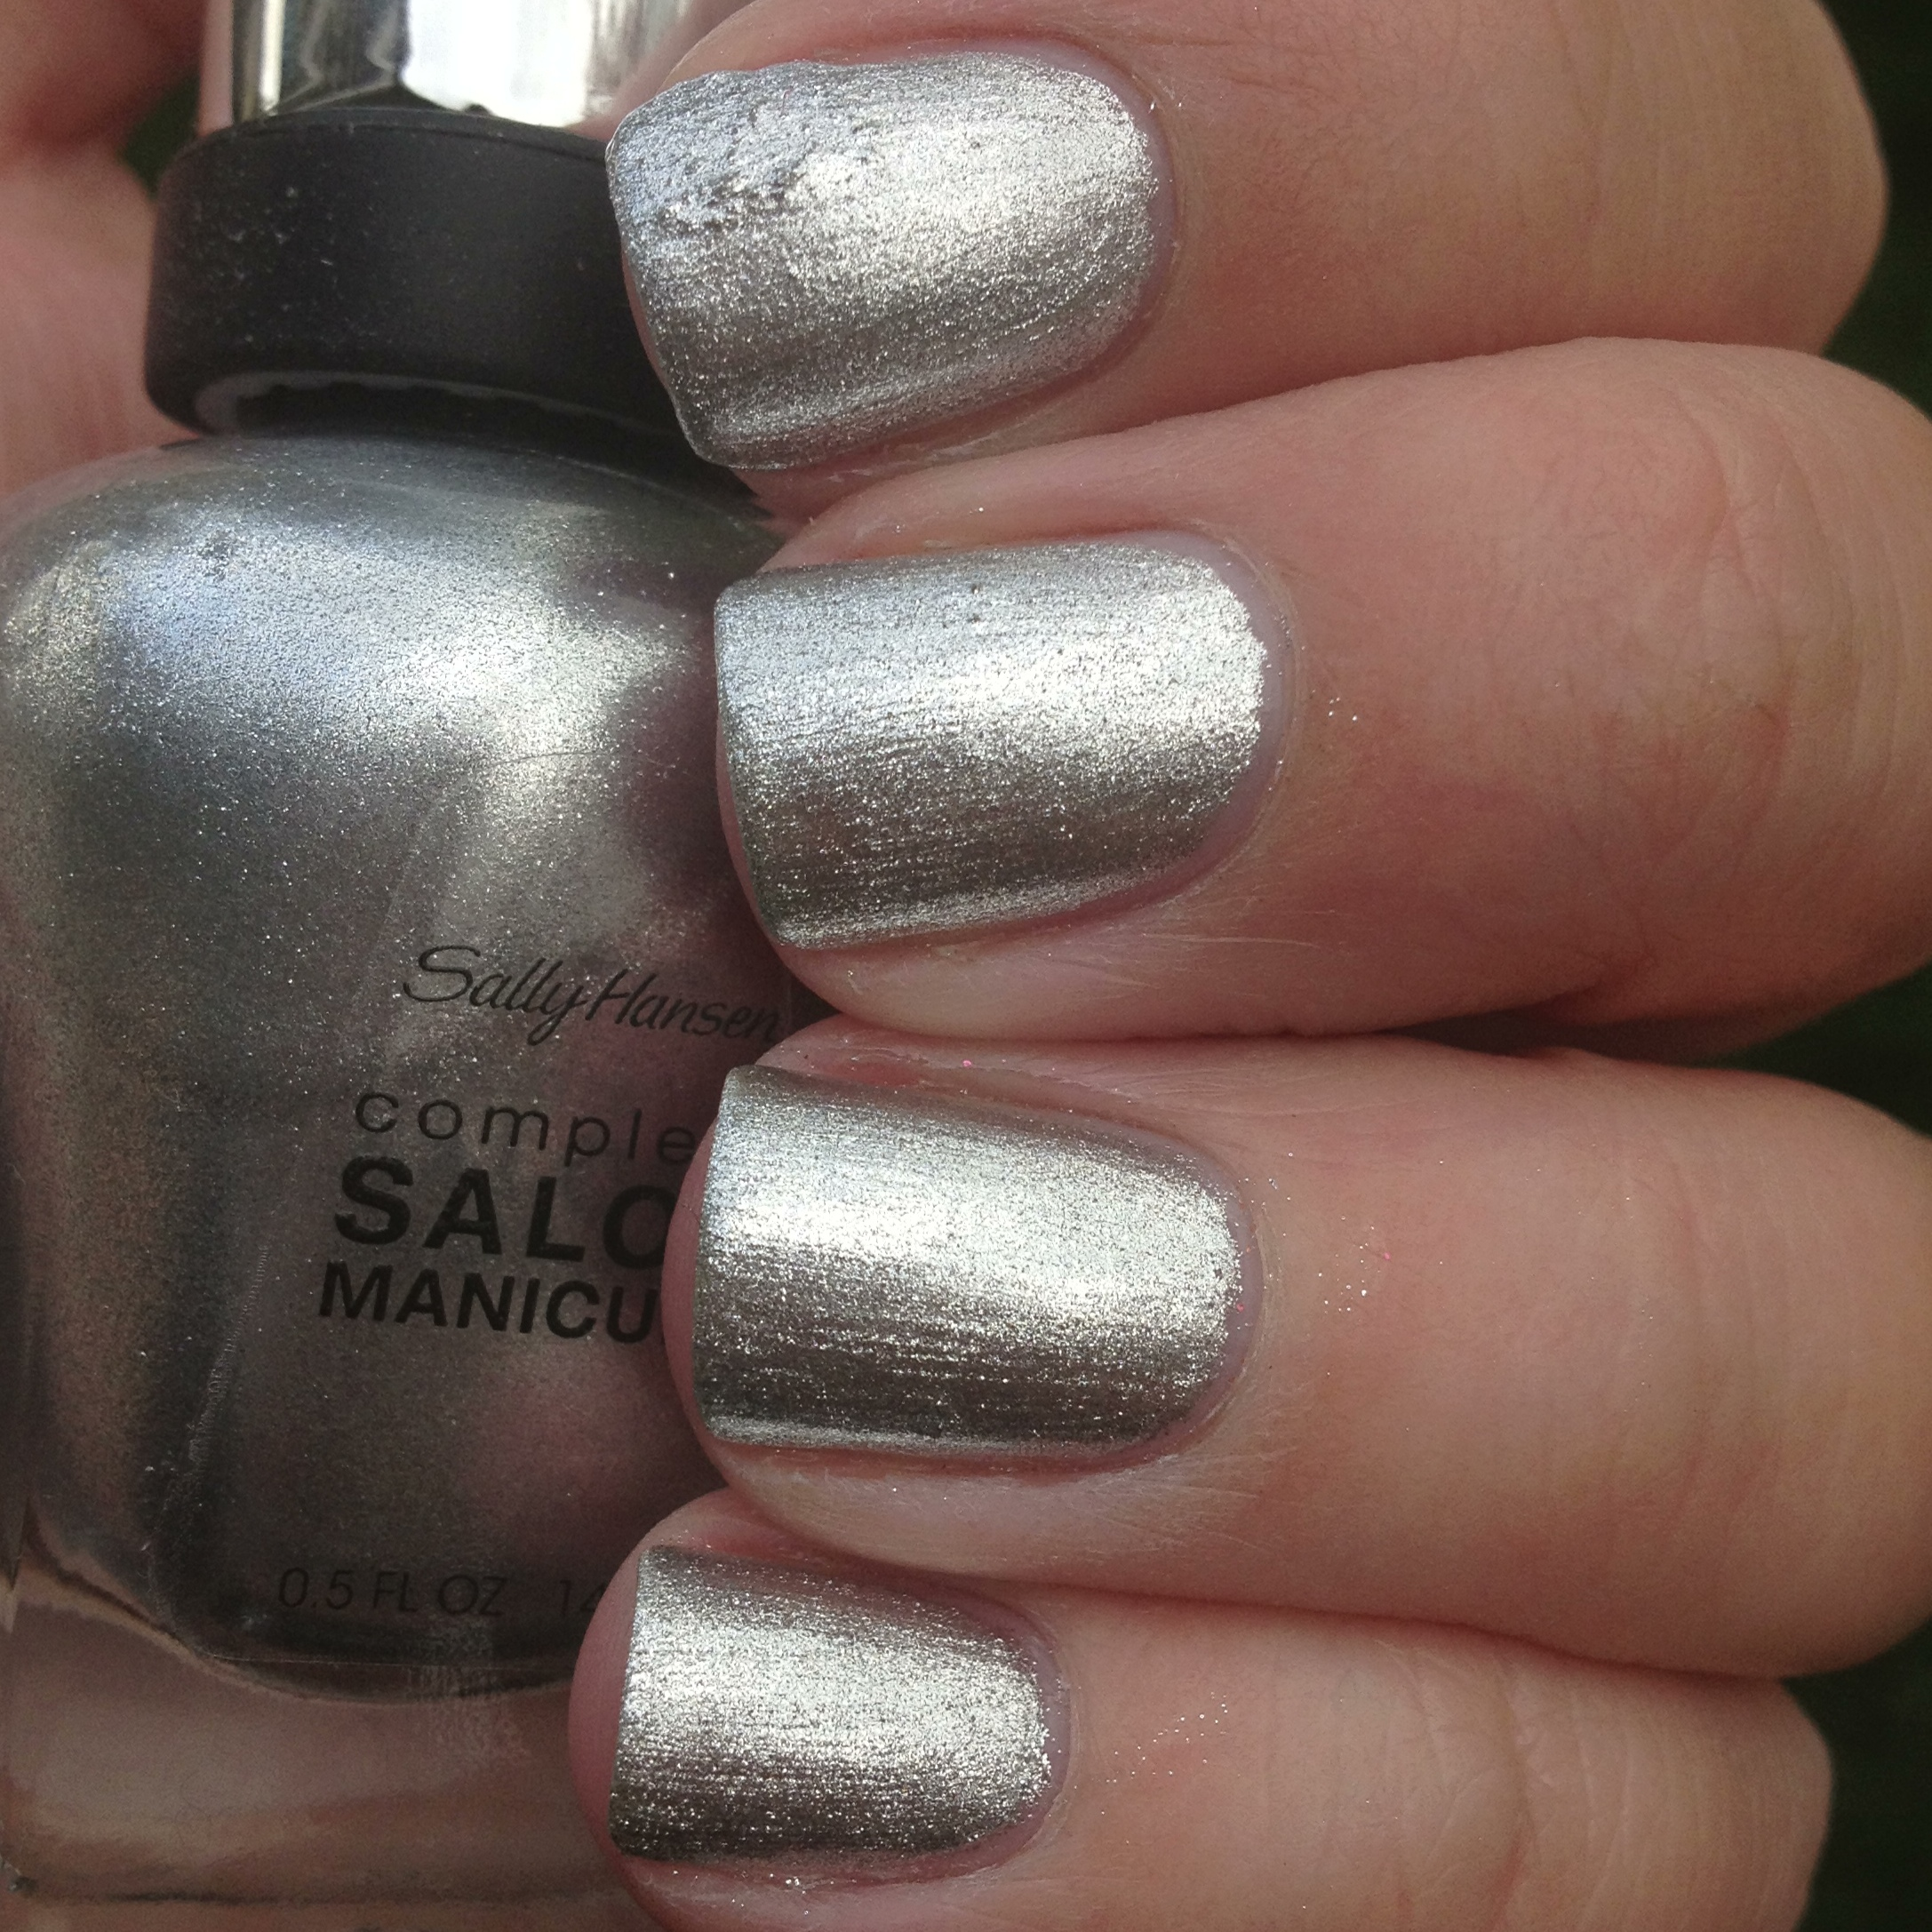 sally hansen complete salon manicure hi ho silver gilty party polish me please. Black Bedroom Furniture Sets. Home Design Ideas